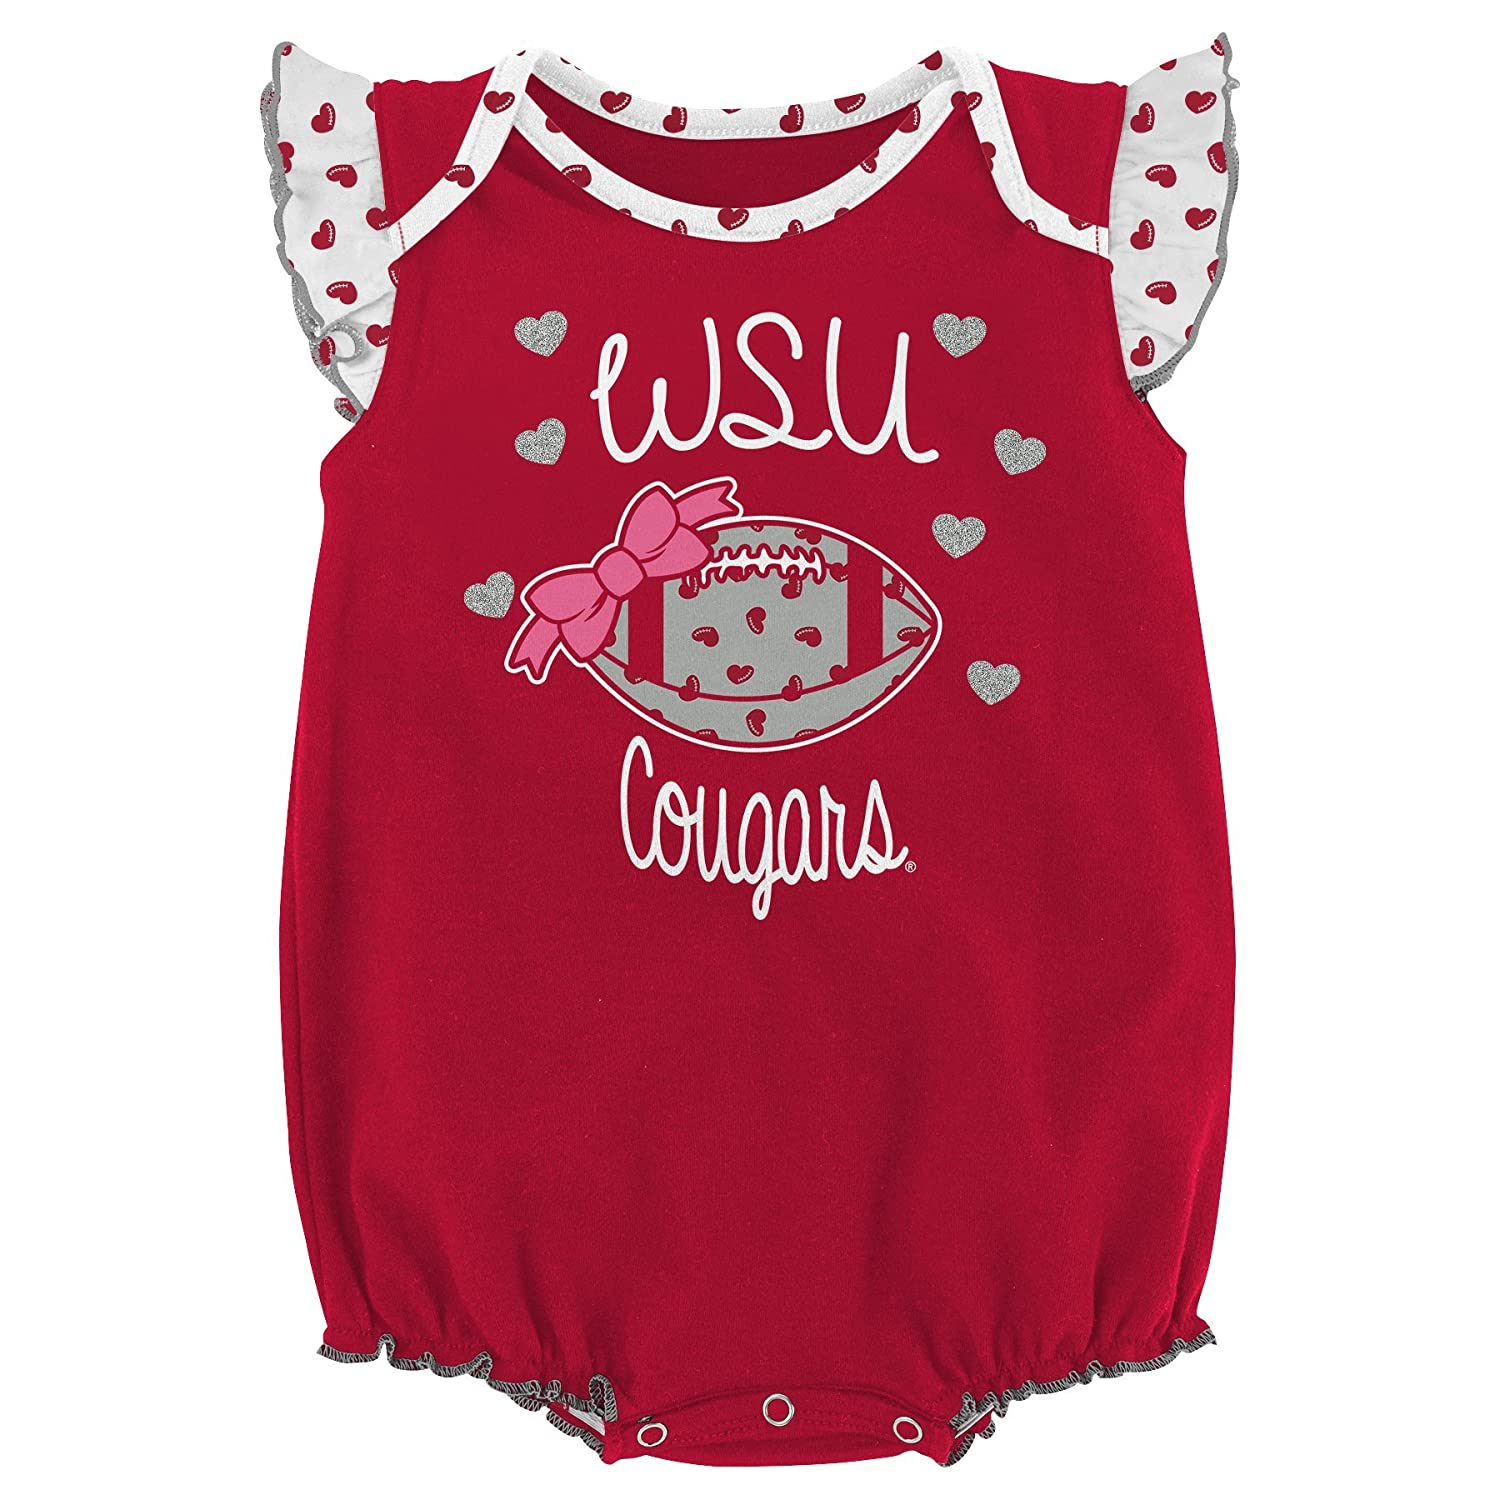 Amazon Gen 2 NCAA Newborn Heart Fan 2Piece esie Set Sports